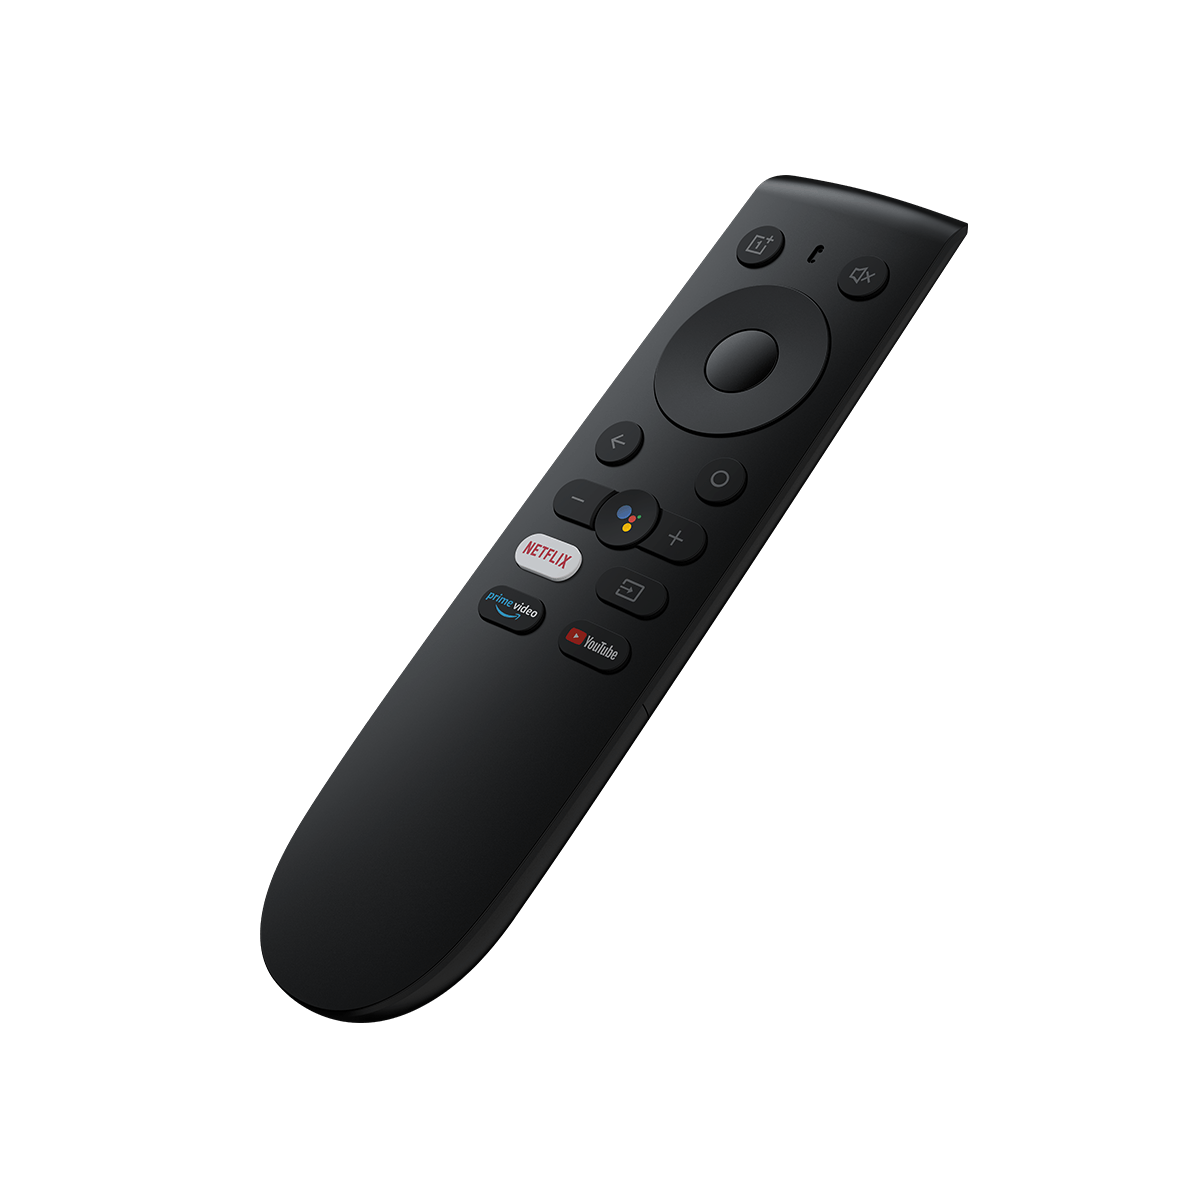 Oneplus Tv Now Supports Netflix Existing Users Can Get The New Remote Remote Tv Remote Controls Tv Design